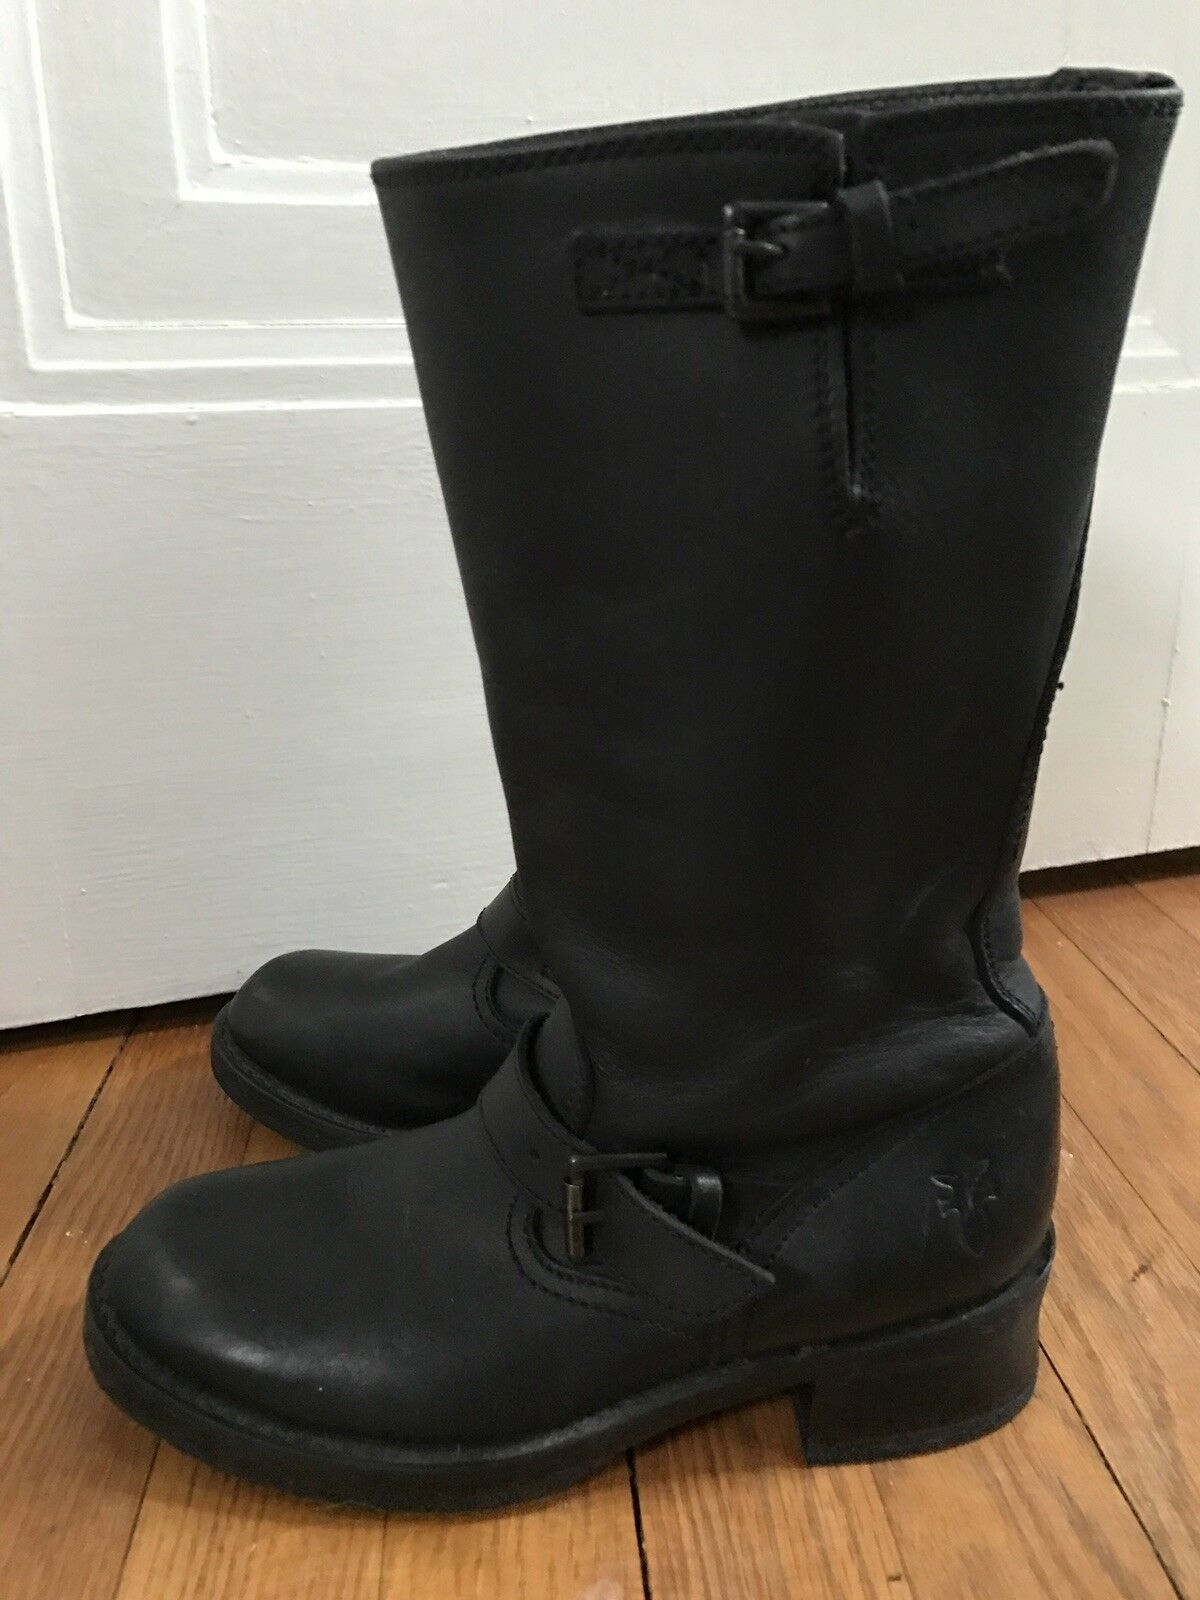 Frye 77515 Black Black Black Leather Engineer Moto Harness Boots EUC 731289